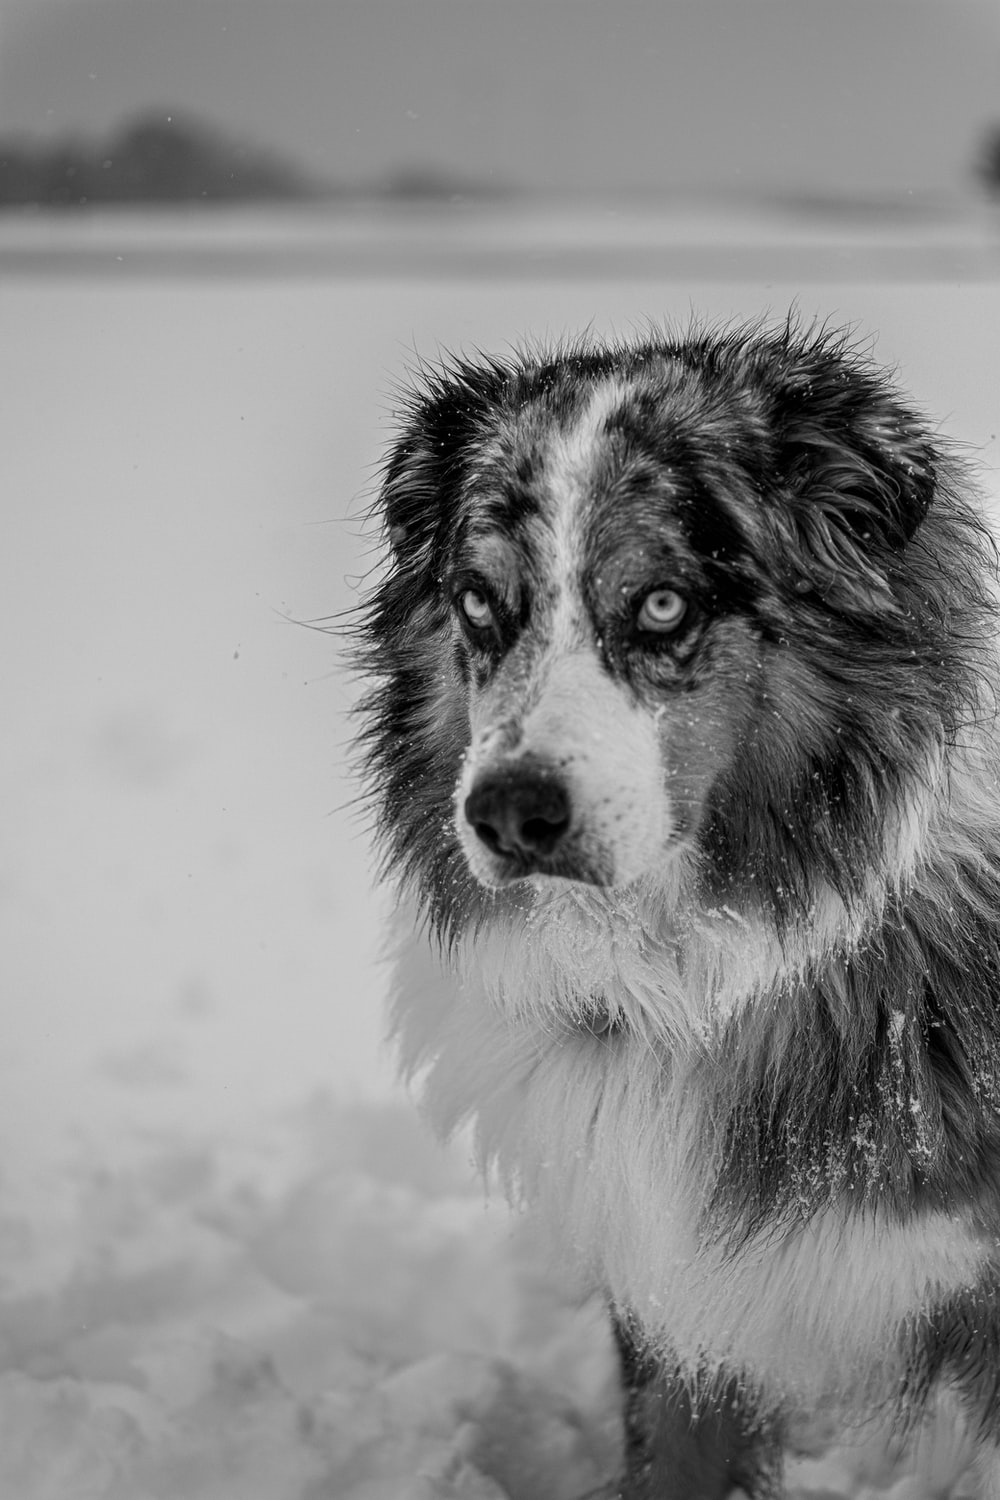 grayscale photo of a dog